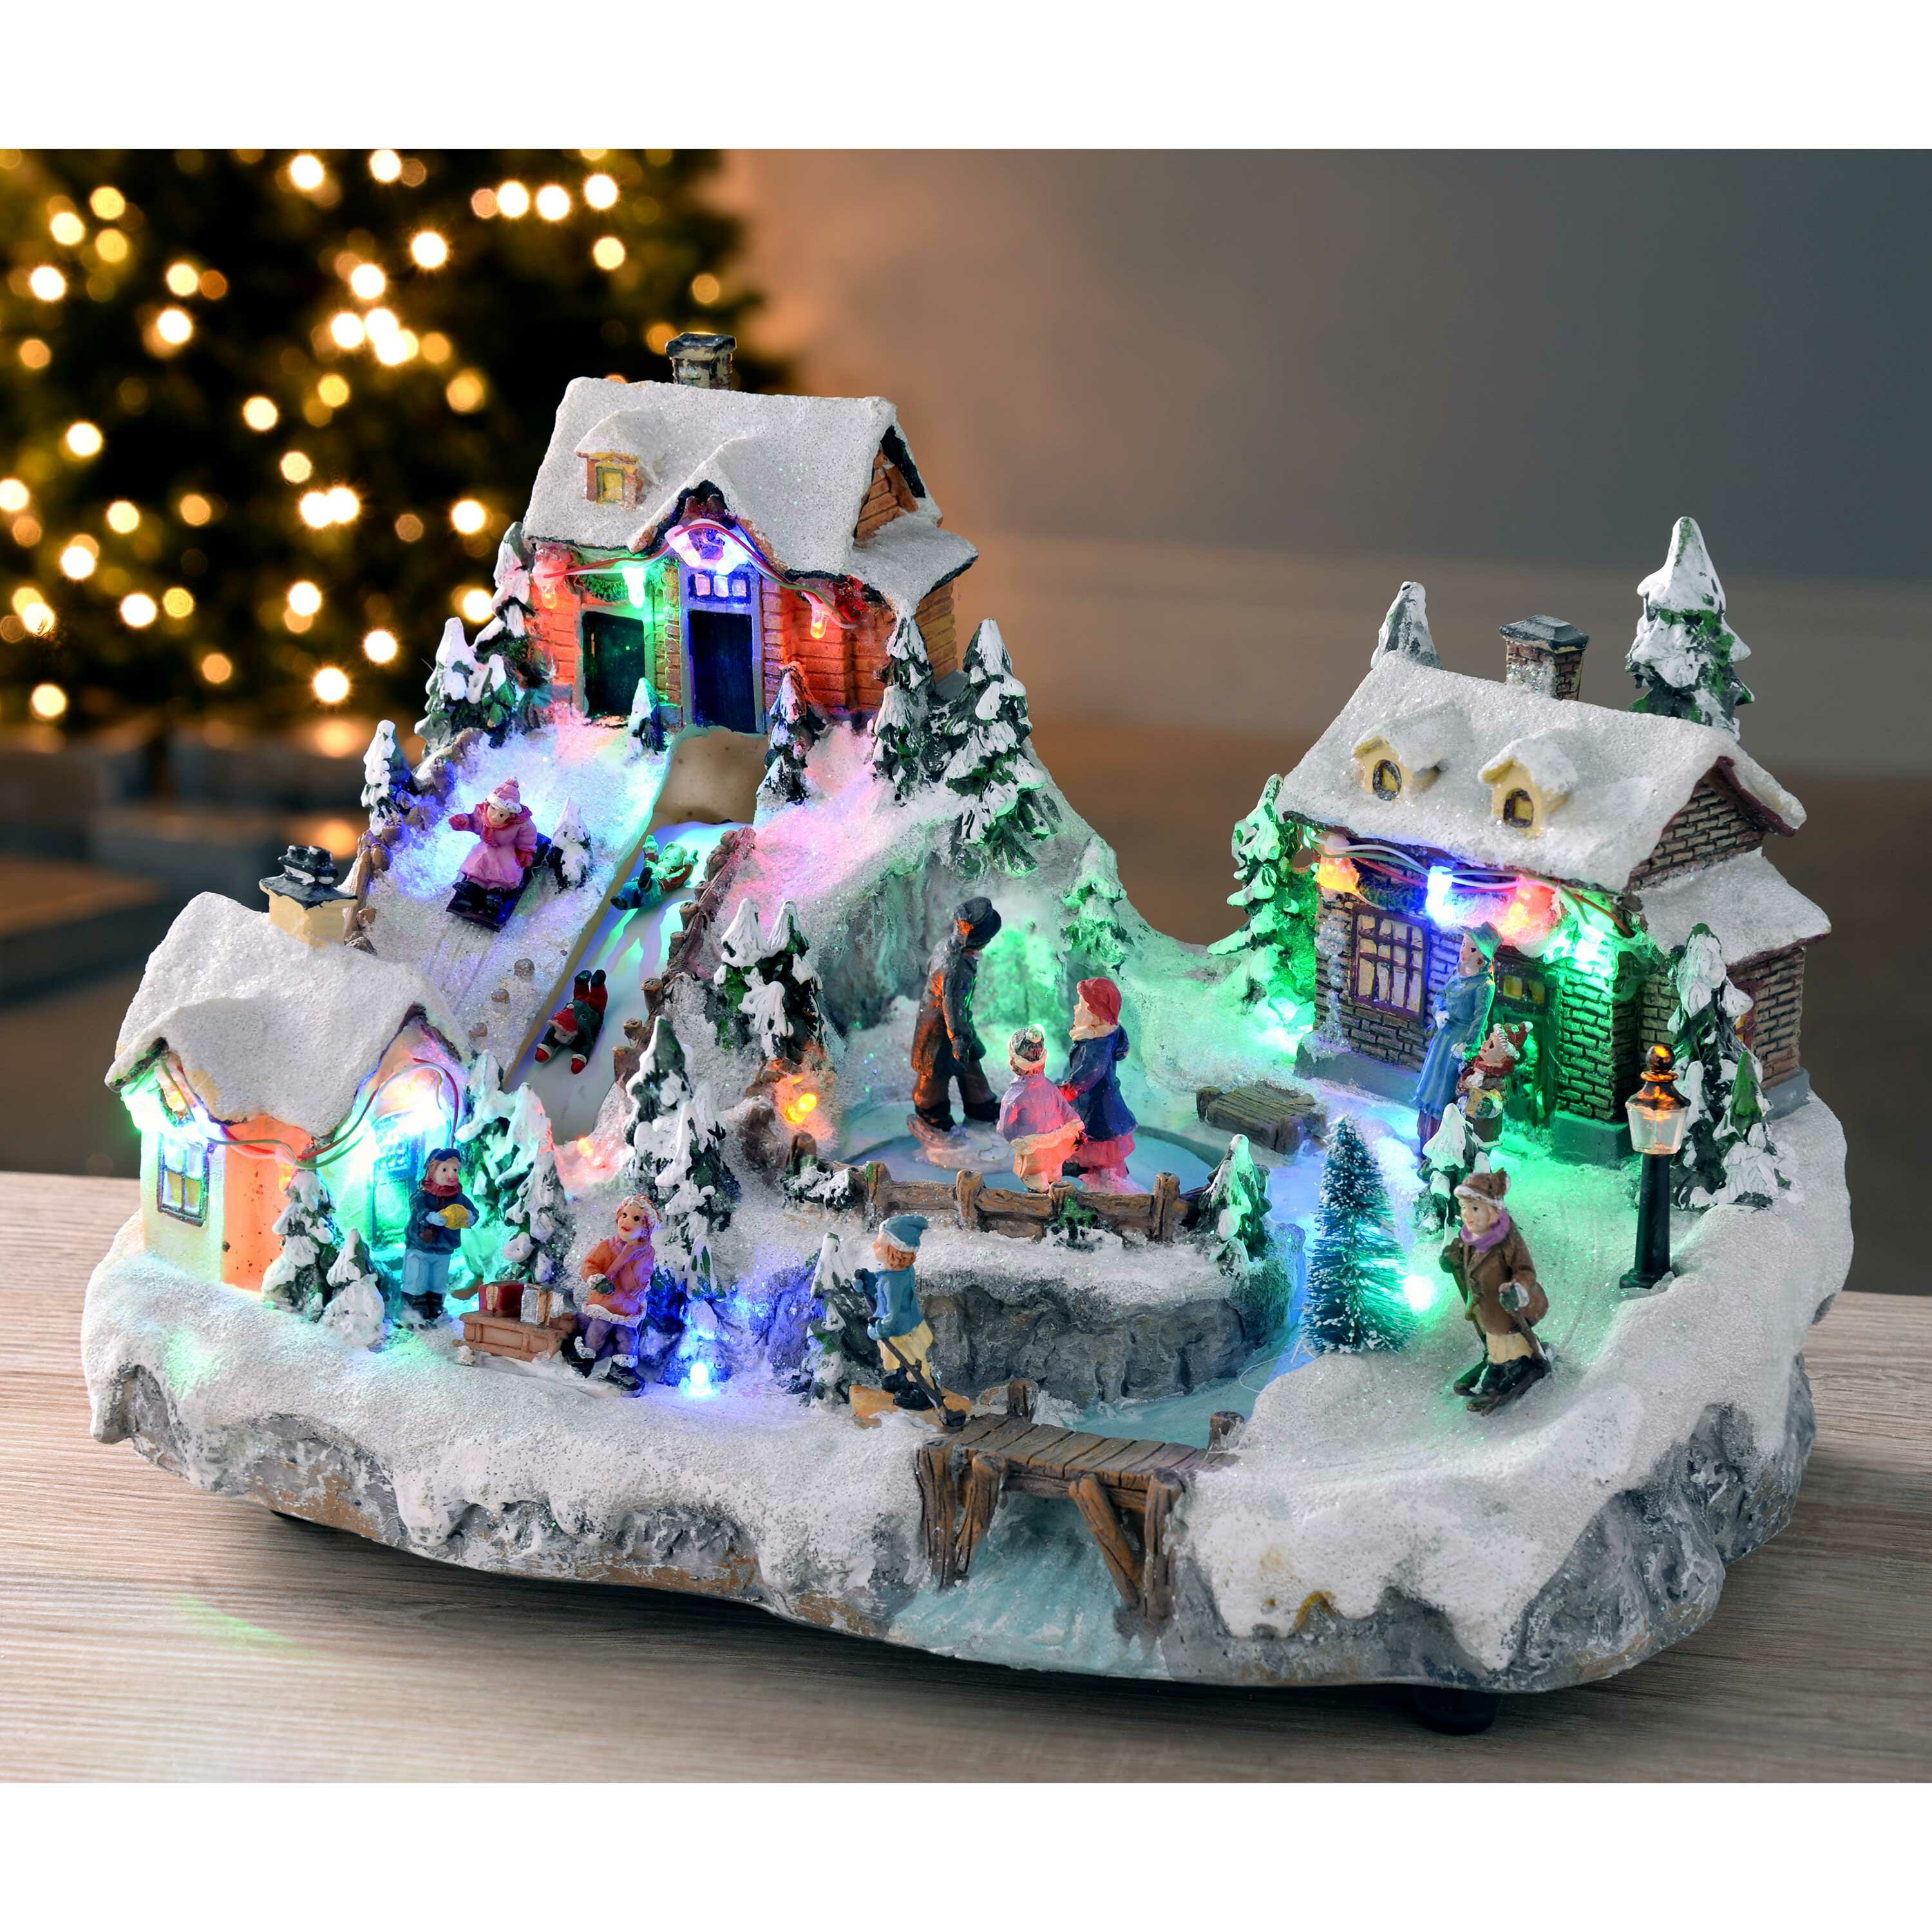 Christmas Ice Skating Rink Decoration.Animated Christmas Village With Moving Ice Rink And Slide Colour Led Lights